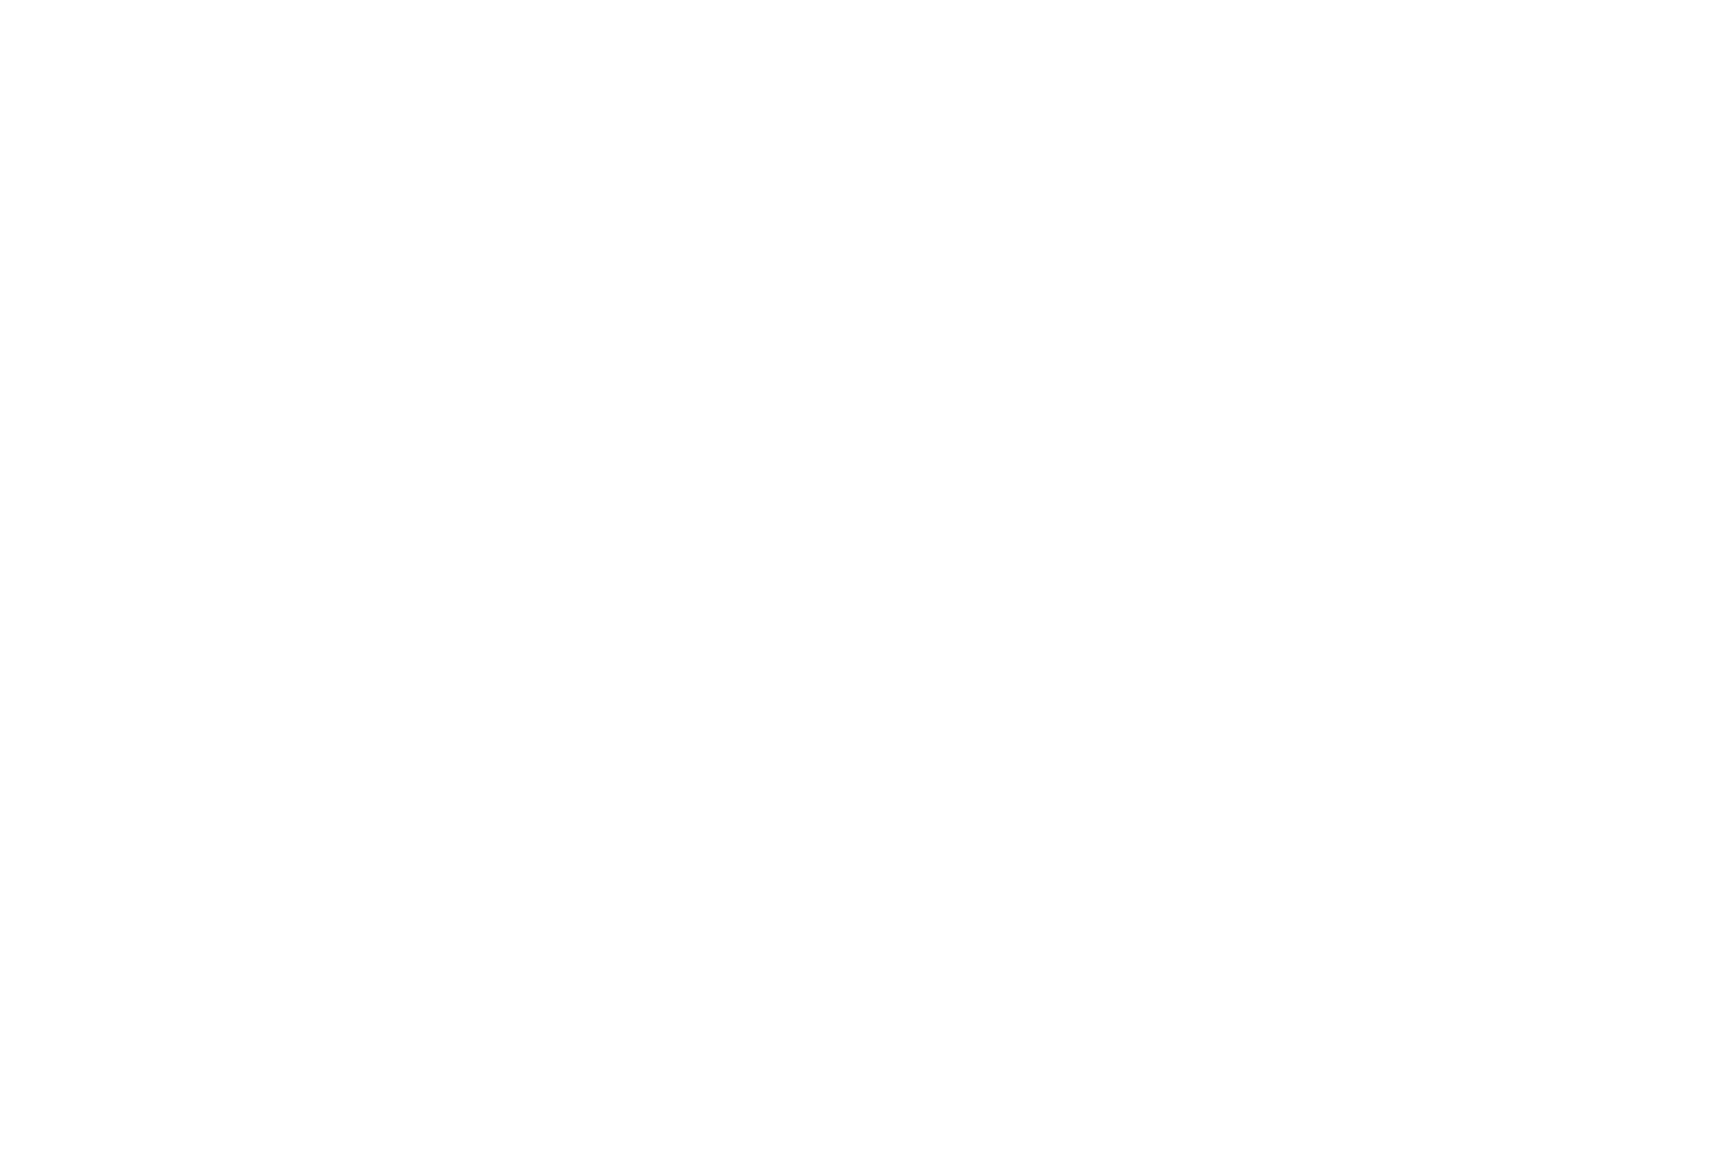 OFFICIAL SELECTION - Austin Spotlight Film Festival - 2018 (1).png